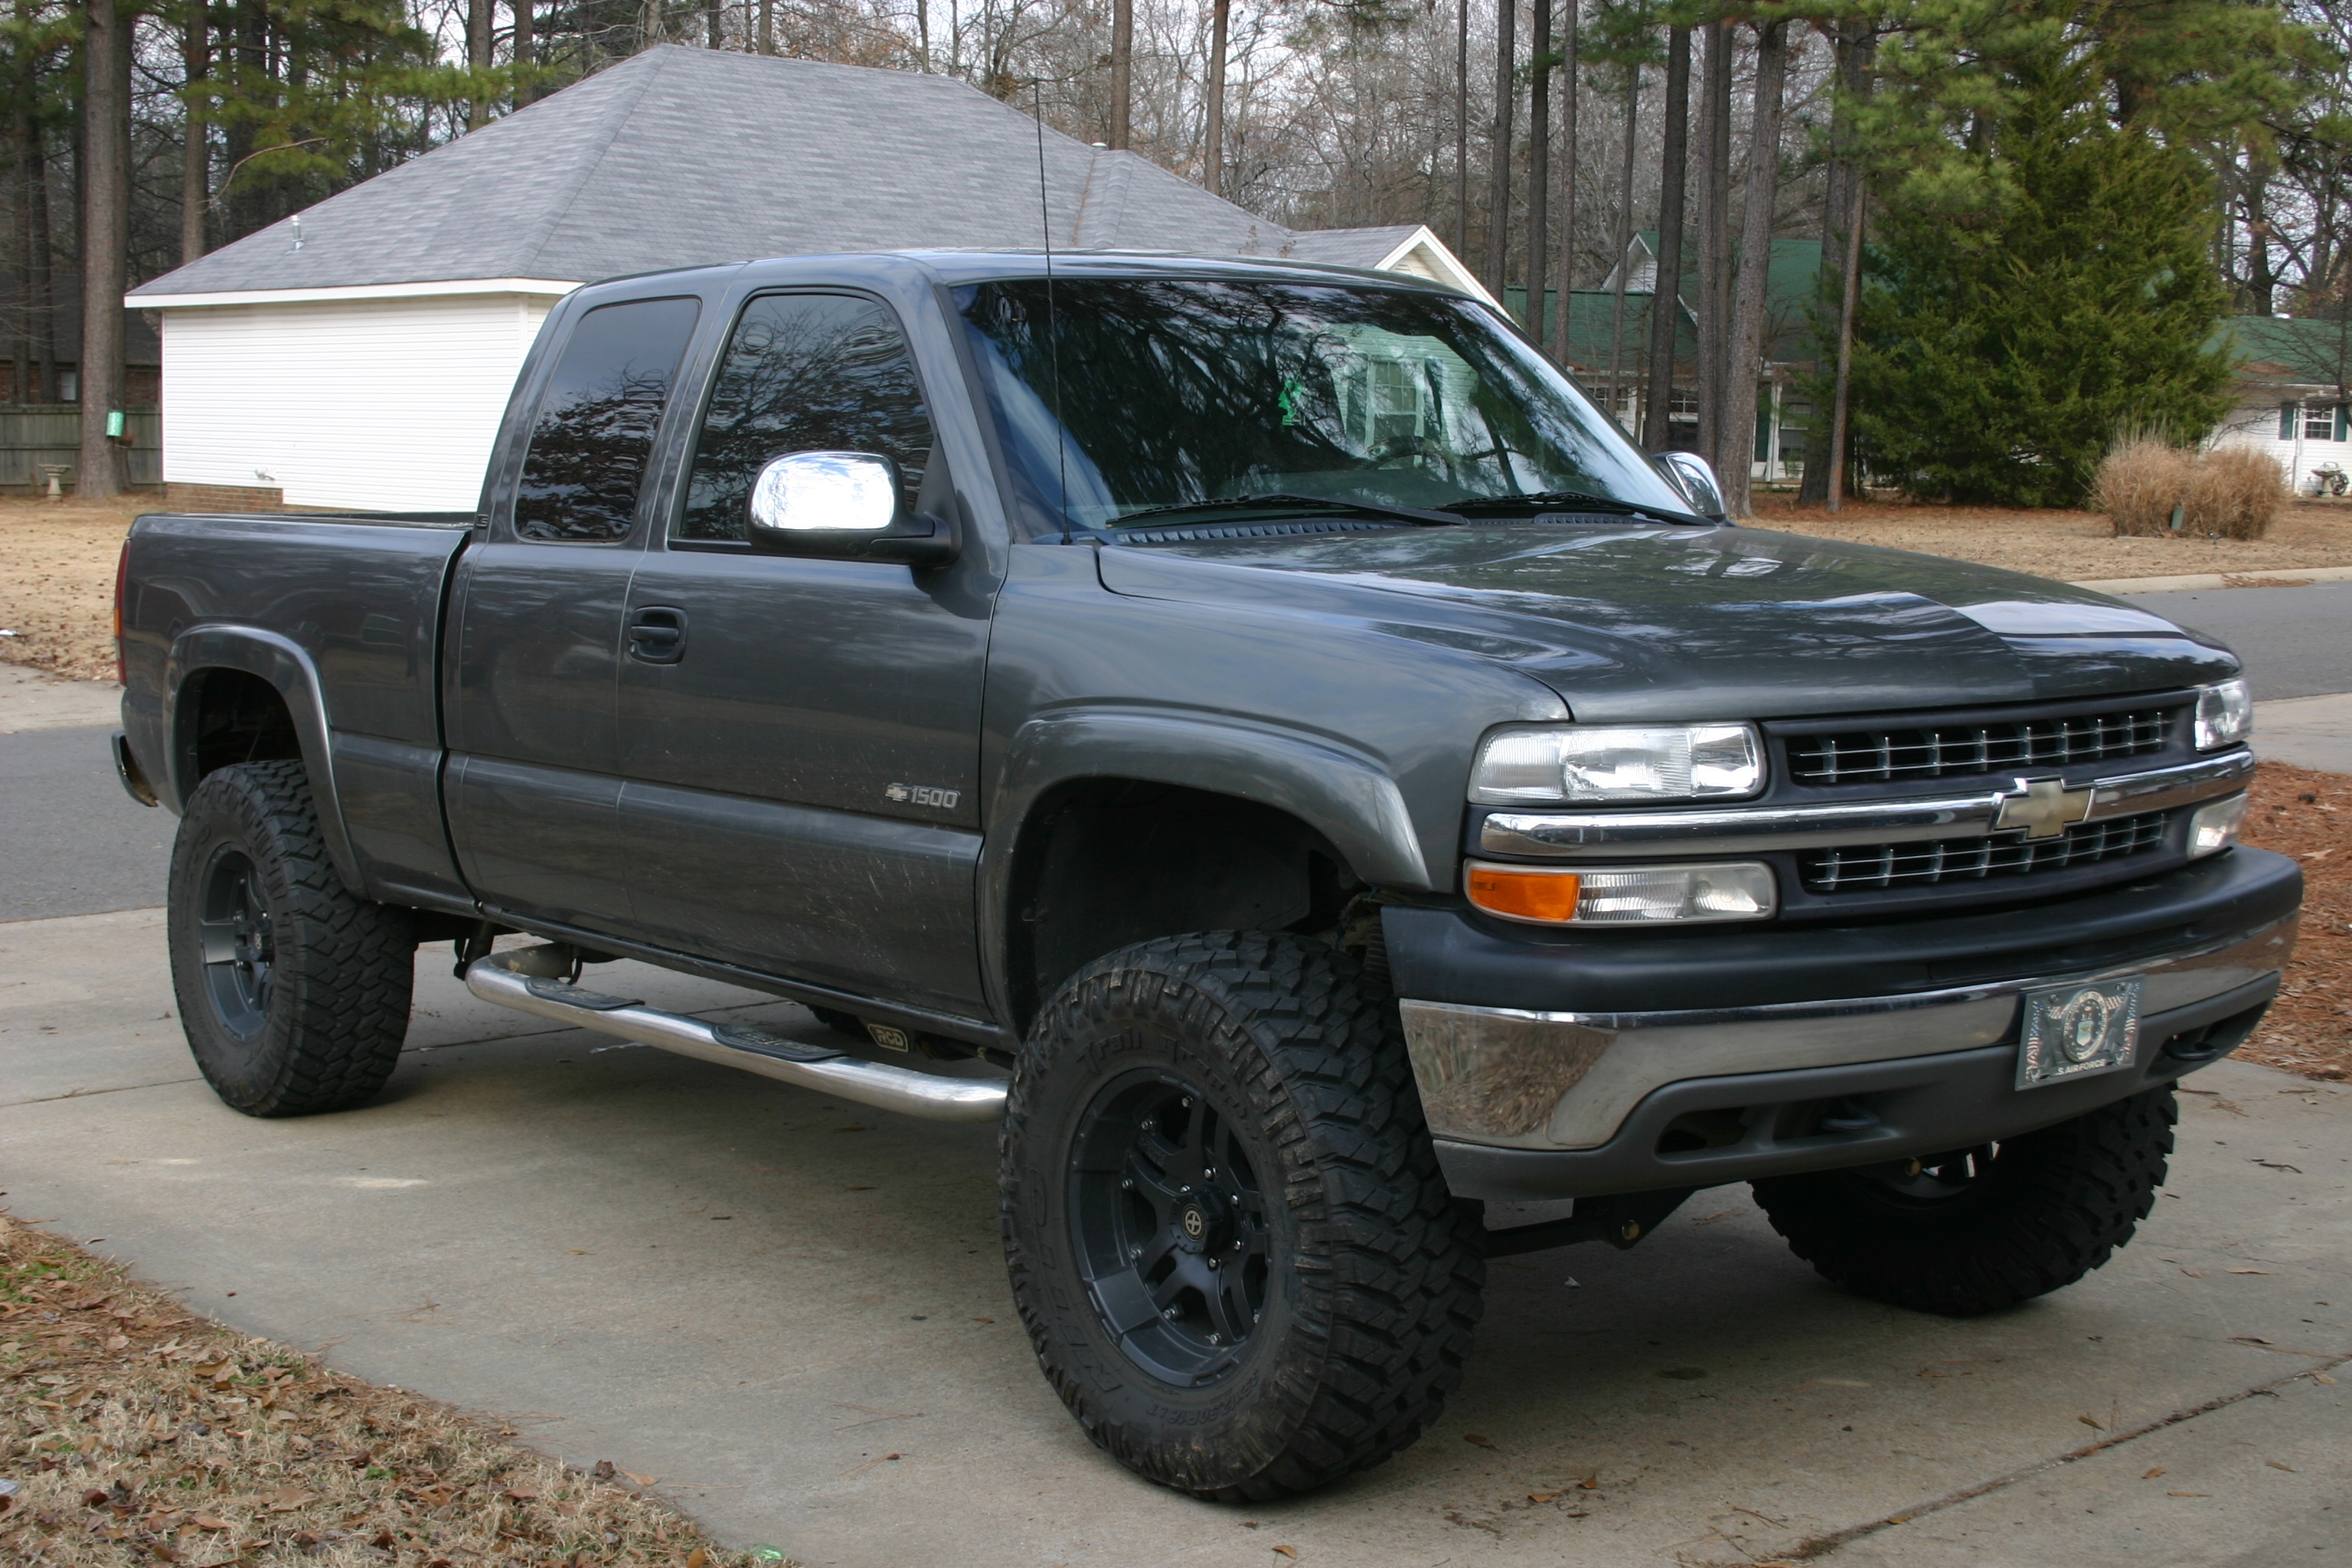 2001 Chevrolet Silverado 1500 Downloads Rctgo